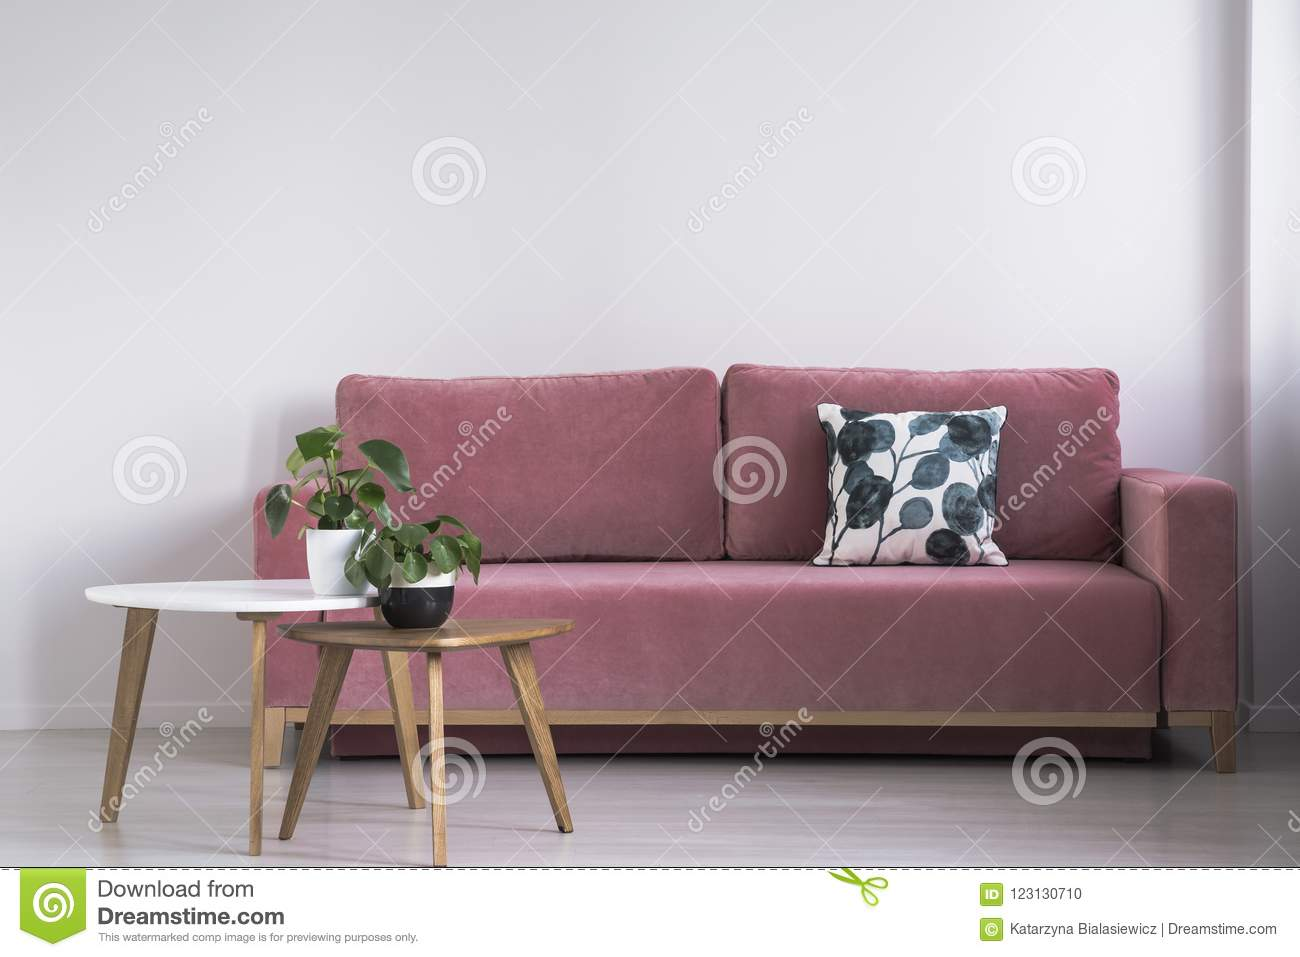 Pink Sofa With A Patterned Pillow And Two Coffee Tables With Plants On A  White Wall